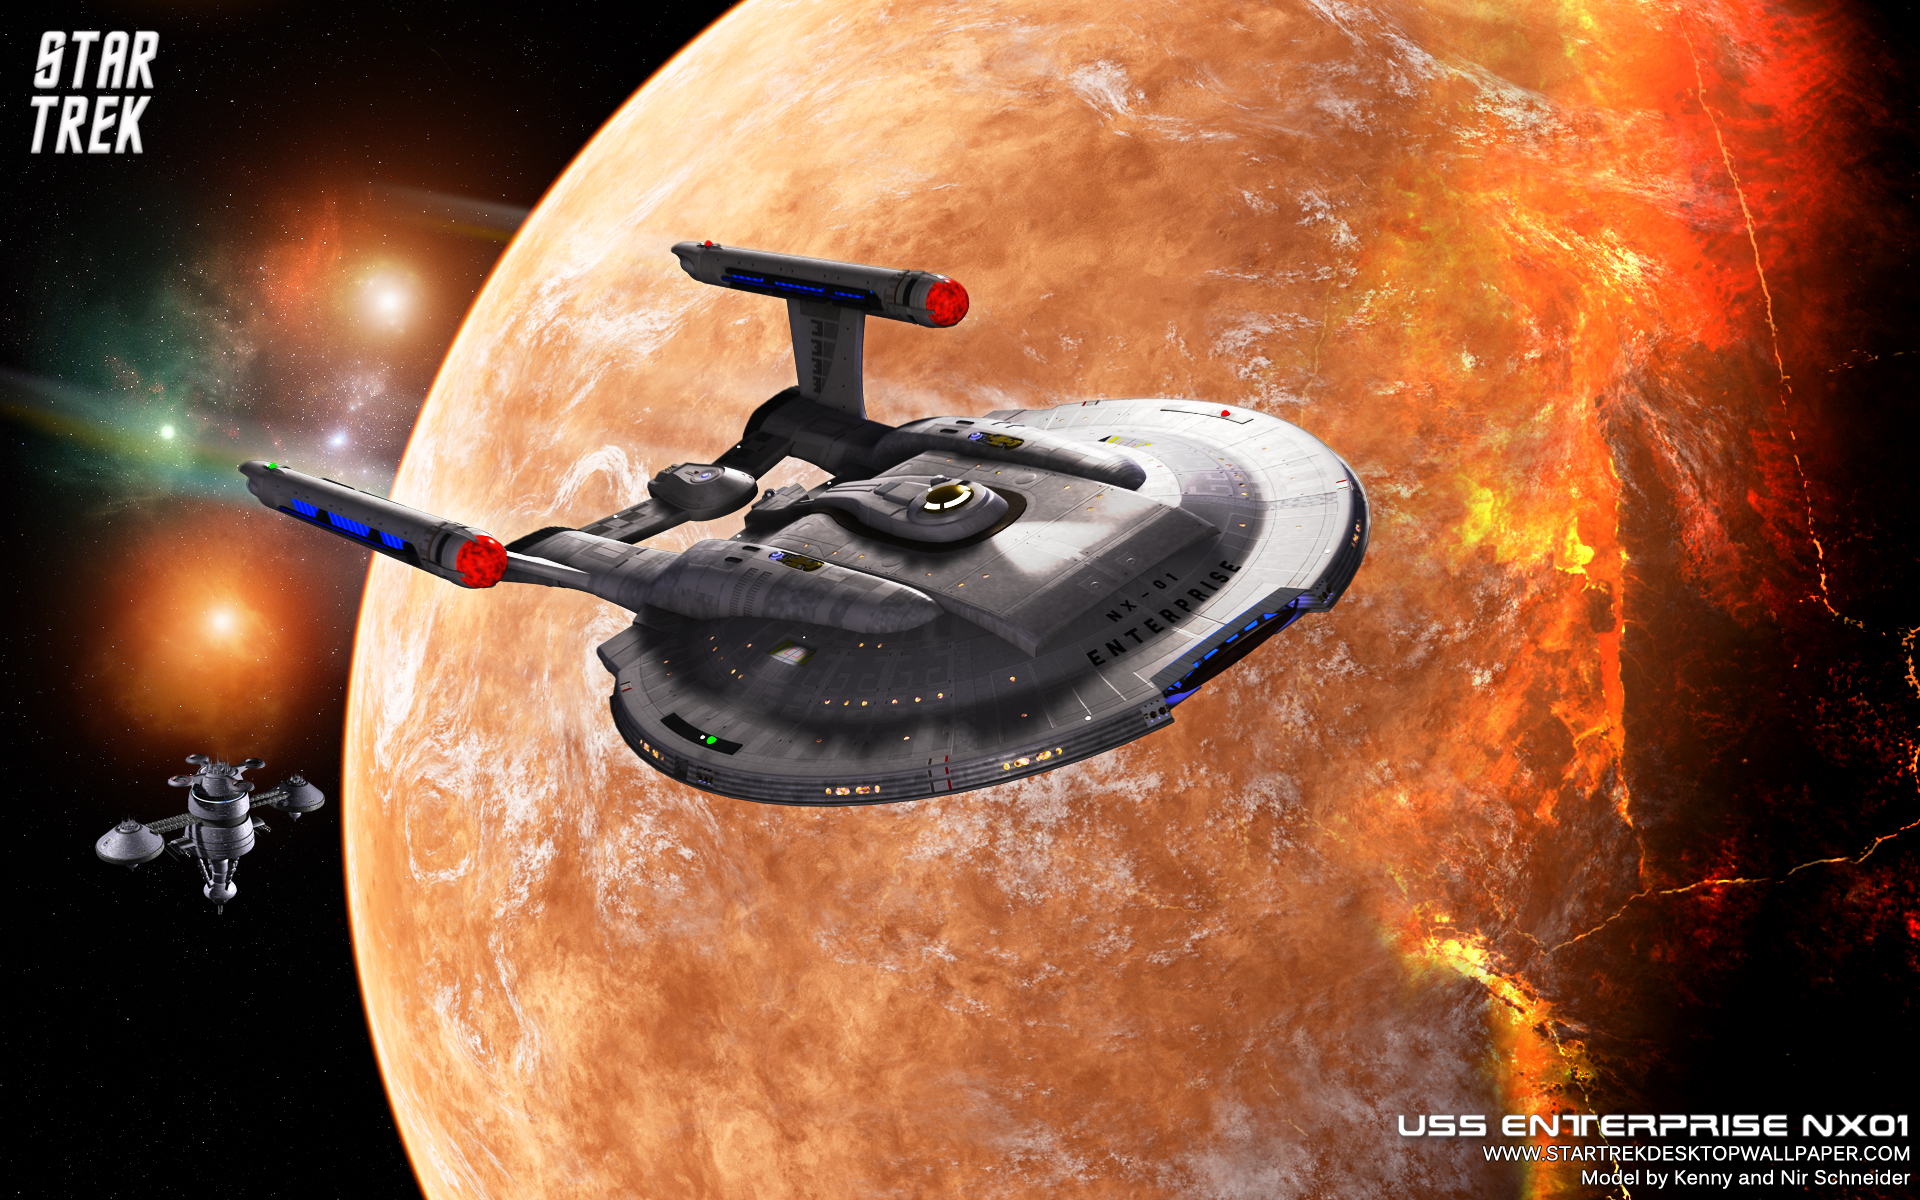 enterprise e wallpaper hd - photo #36